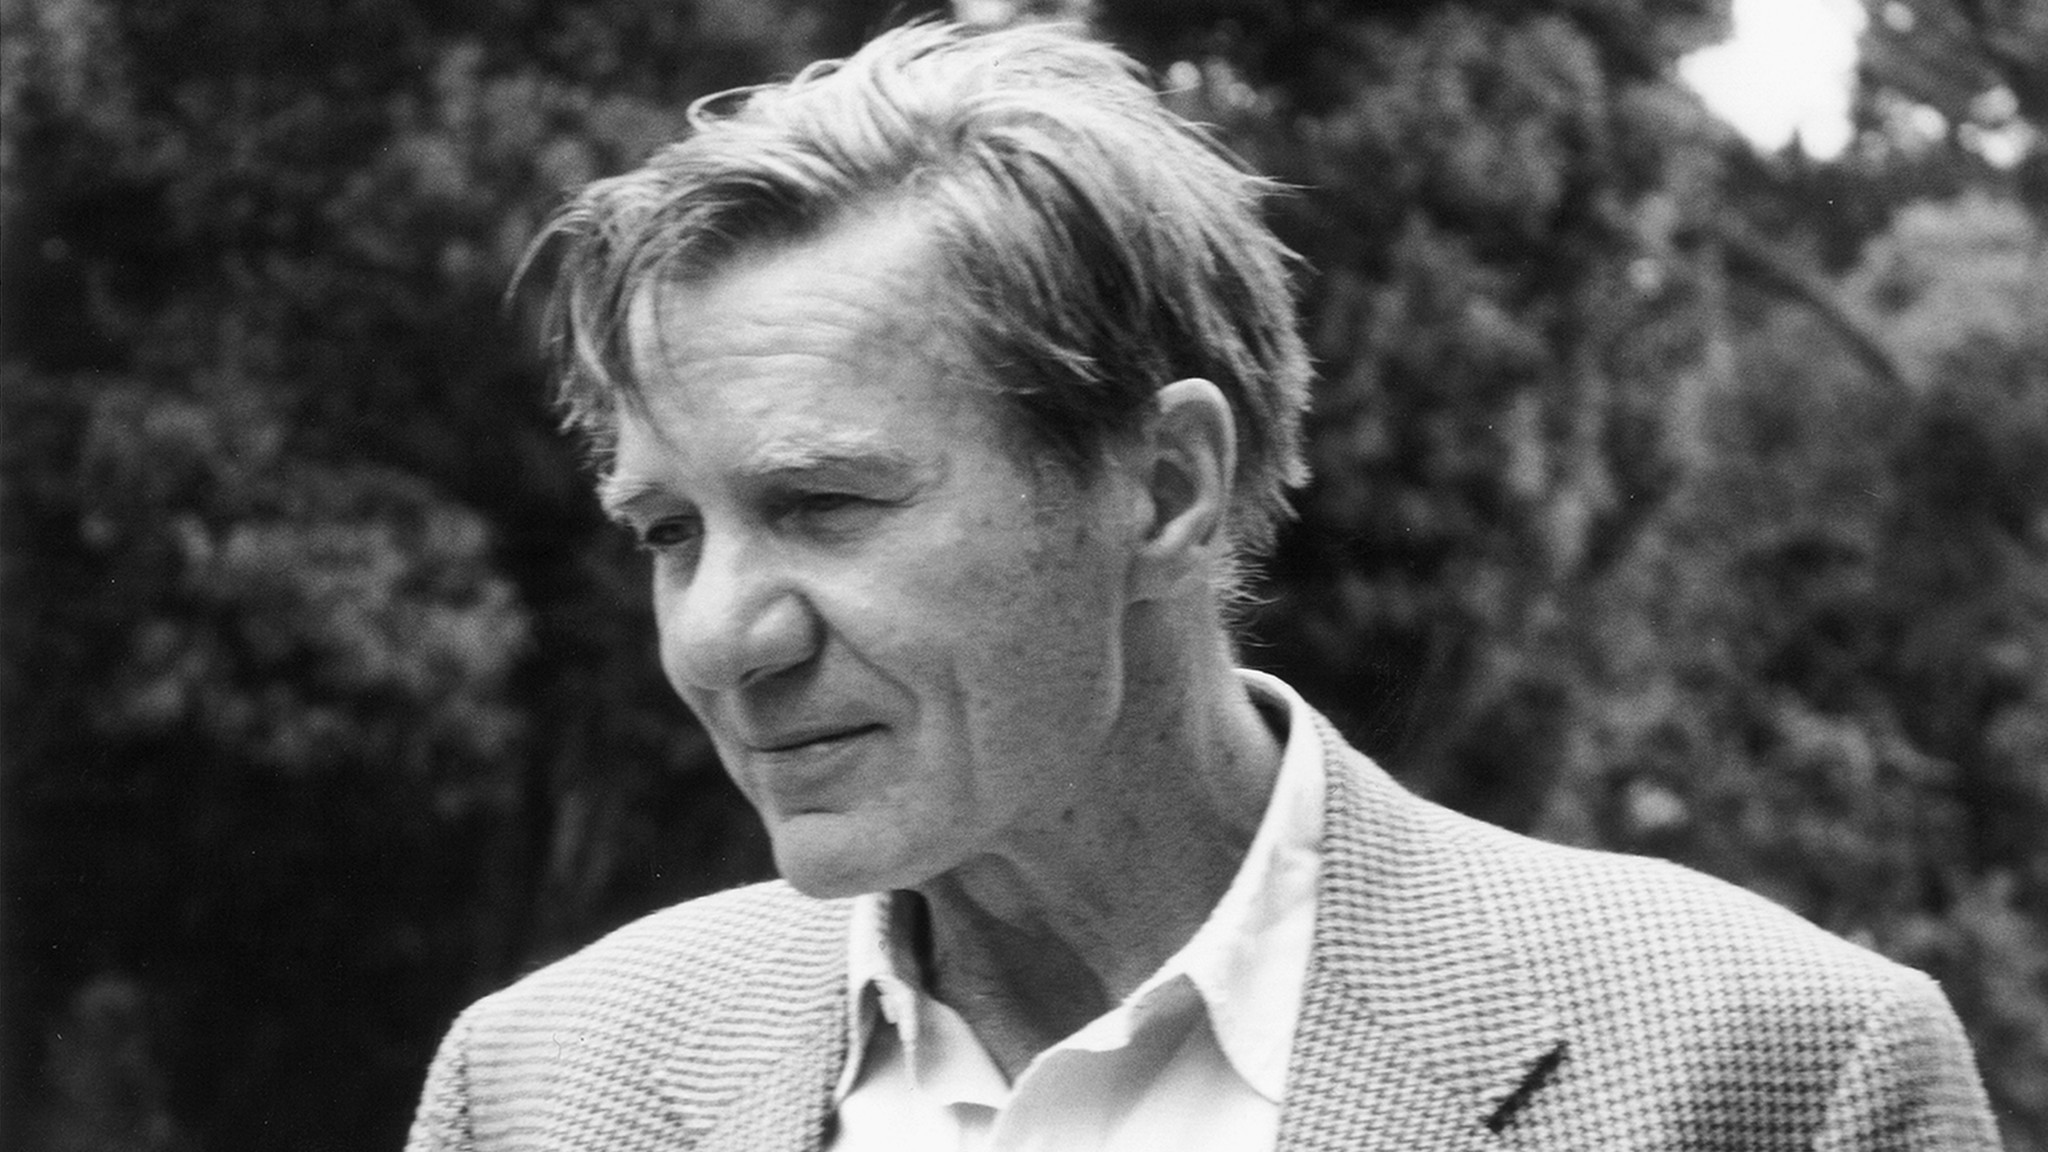 a biography of galway kinnell a poet Galway kinnell (born february 1, 1927) is a pulitzer prize-winning american poet and academic he served as poet laureate of vermont born in providence, rhode island, kinnell said that as a.